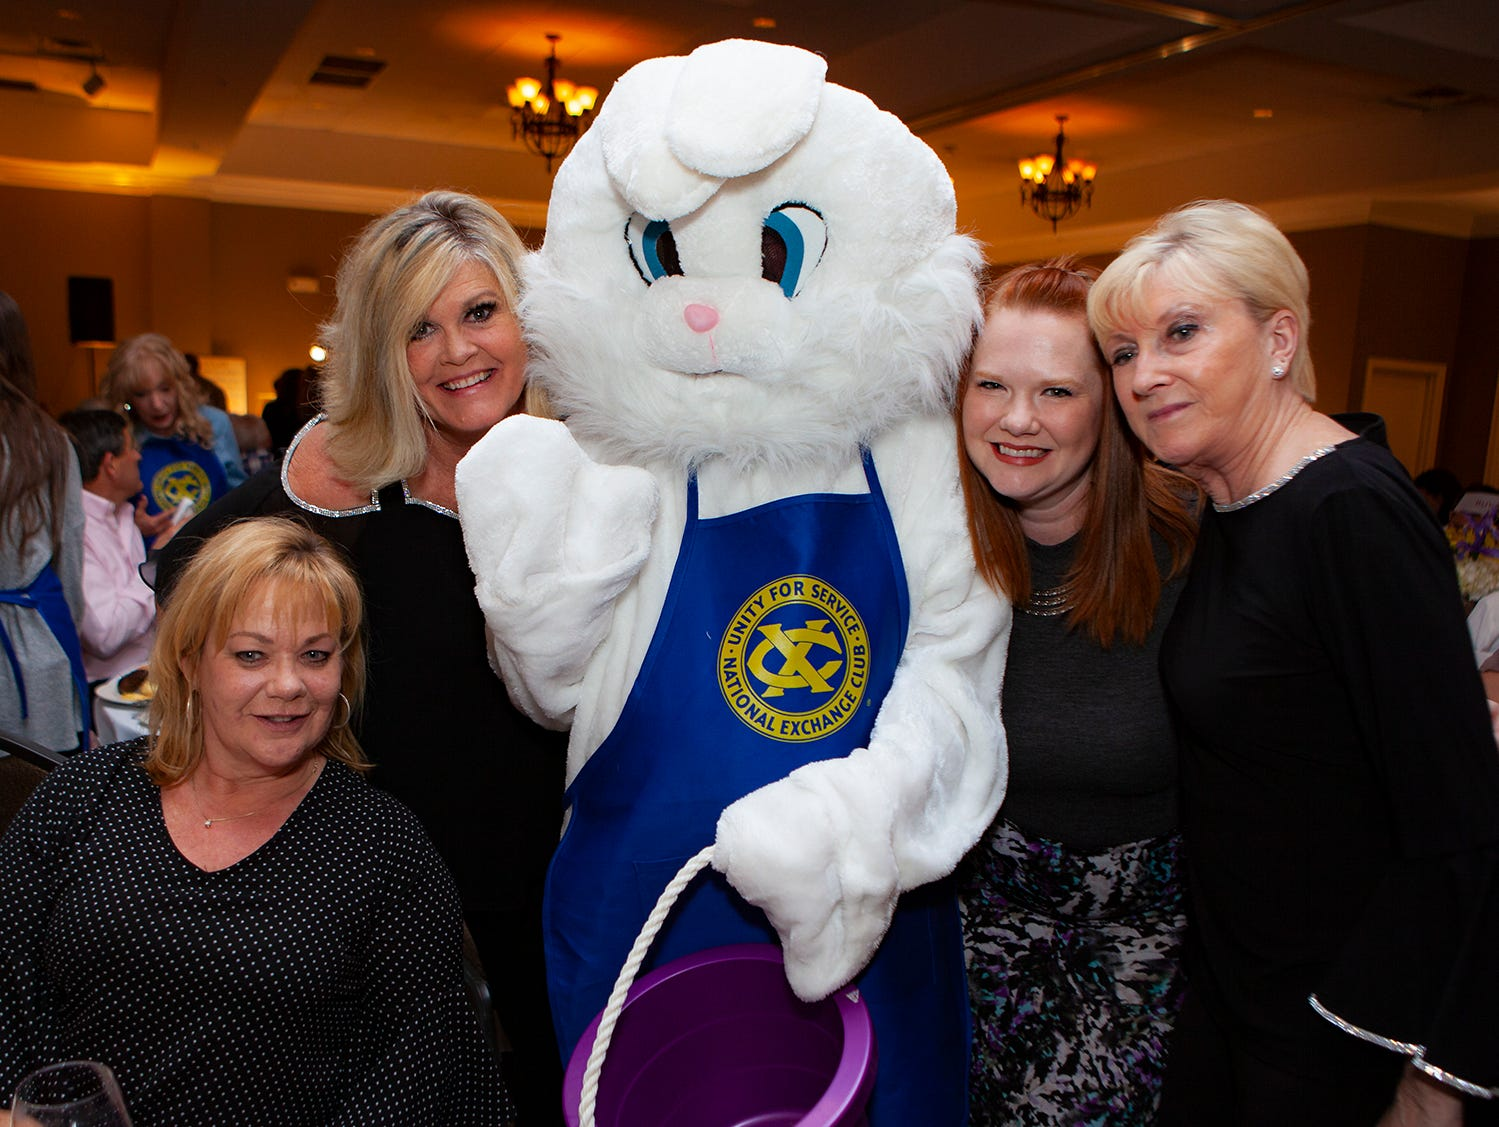 The Exchange Club Celebrity Waiter lunch was held Thursday, April 4, 2019, at Stones River Country Club in Murfreesboro.